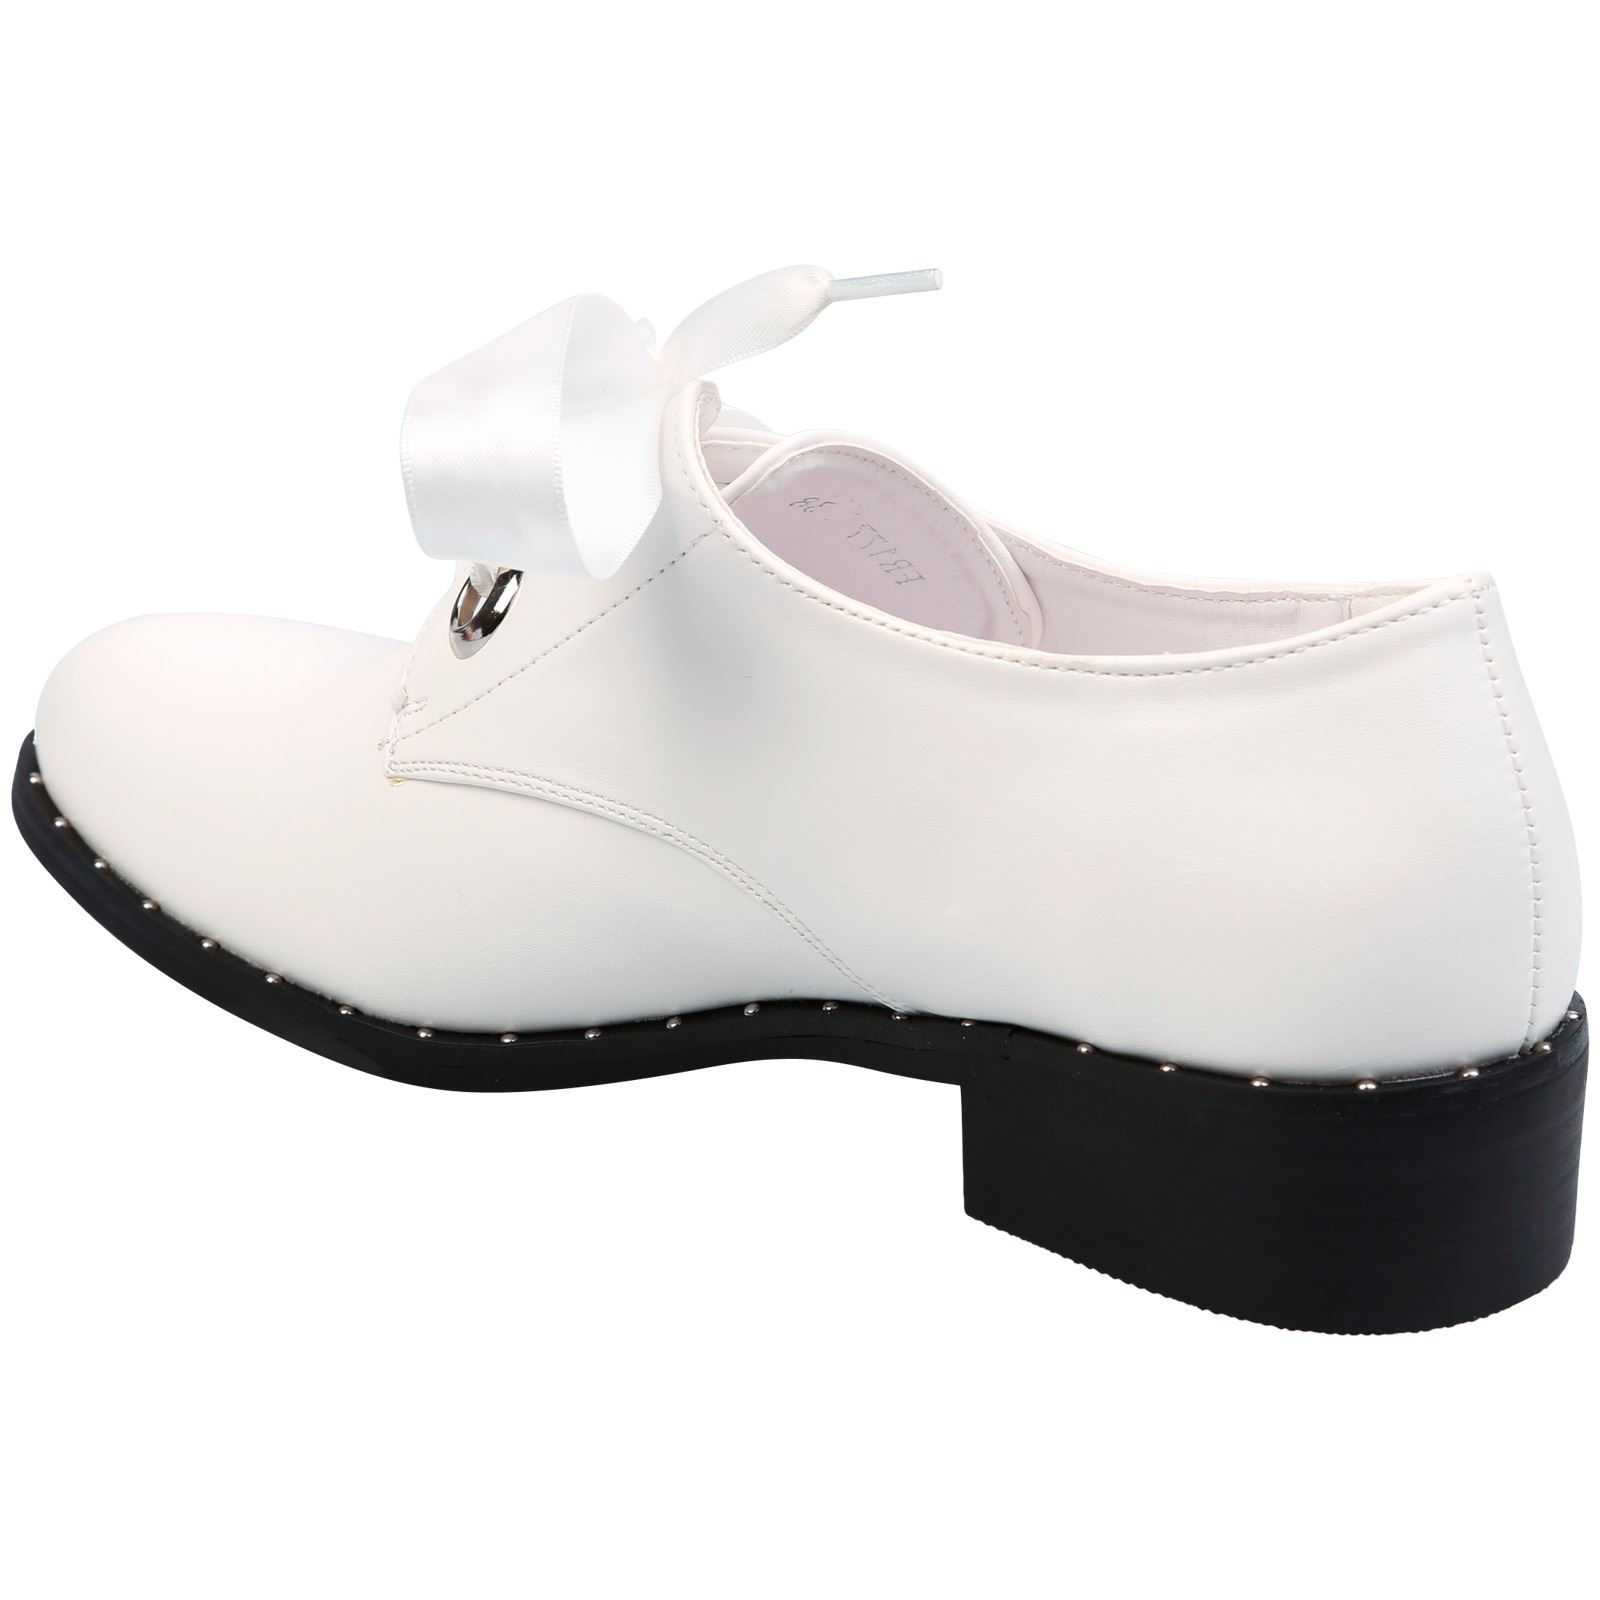 Daena-Womens-Flat-Low-Heel-Satin-Ribbon-Lace-Up-Brogues-Ladies-Oxford-Shoes-Size